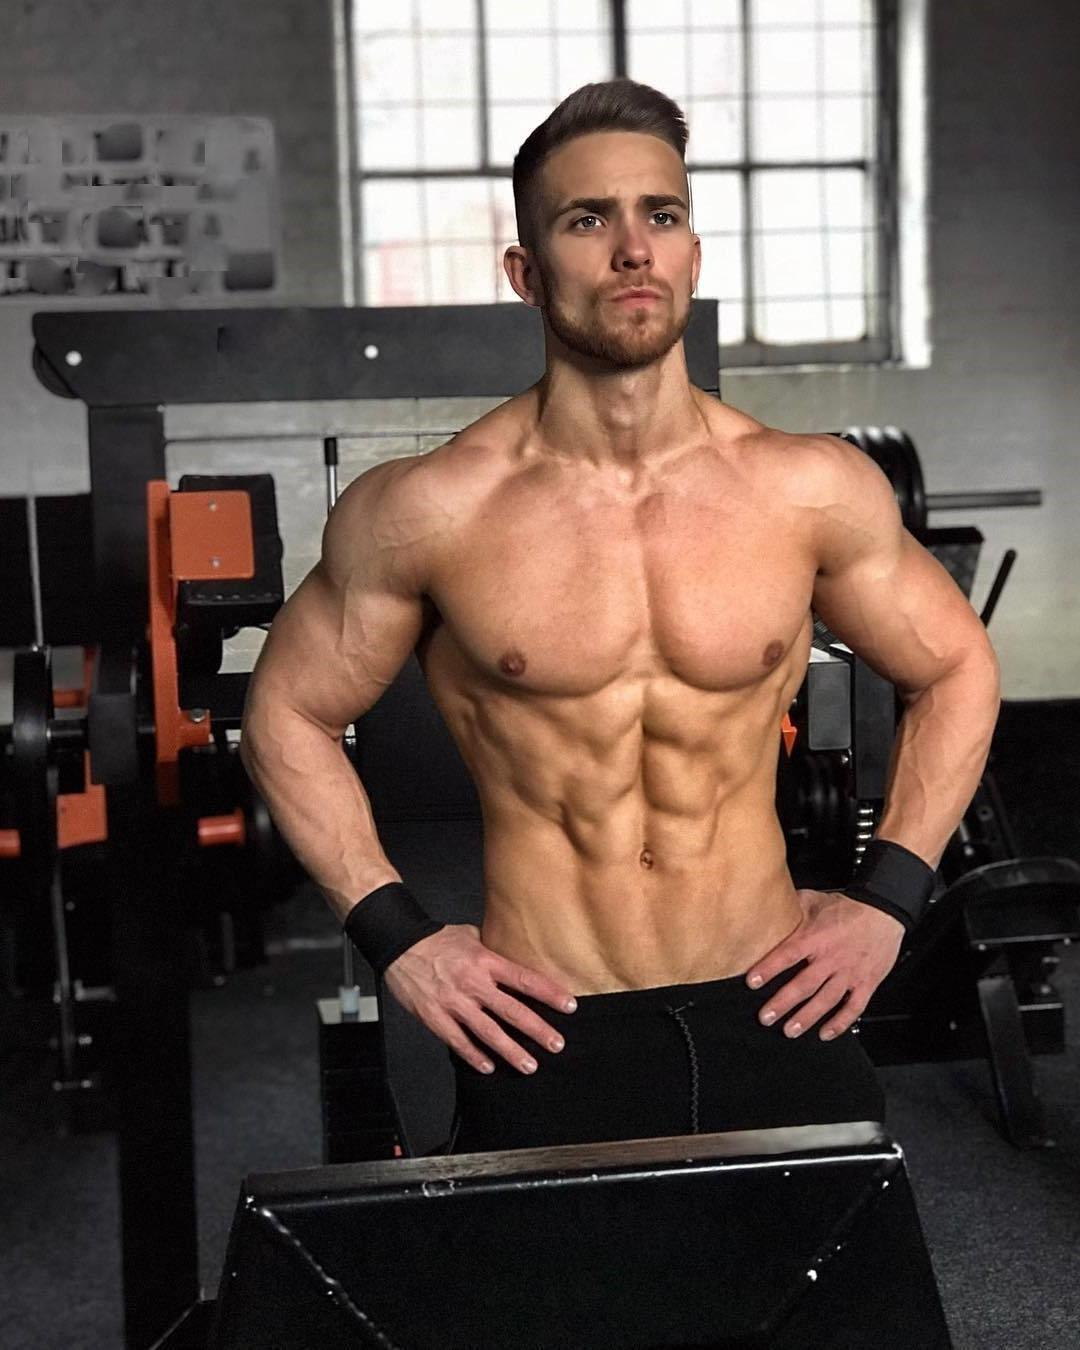 shirtless-gym-hunk-with-abs-josh-coburn-pictures